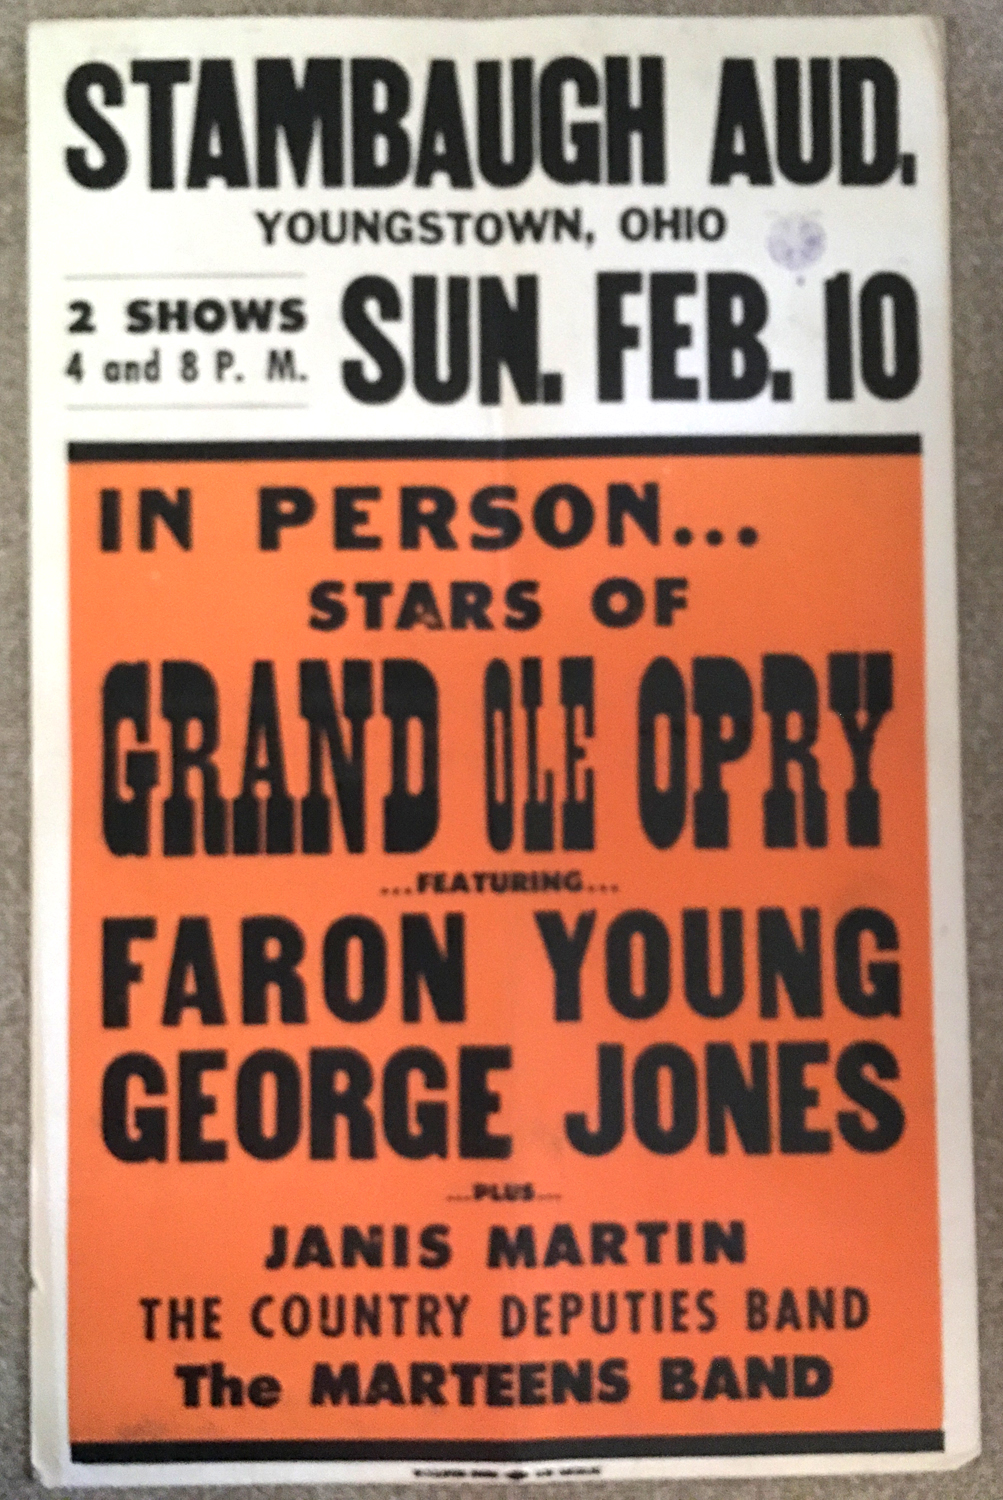 Image for Faron Young & George Jones, 1957, Country and Western Concert Poster